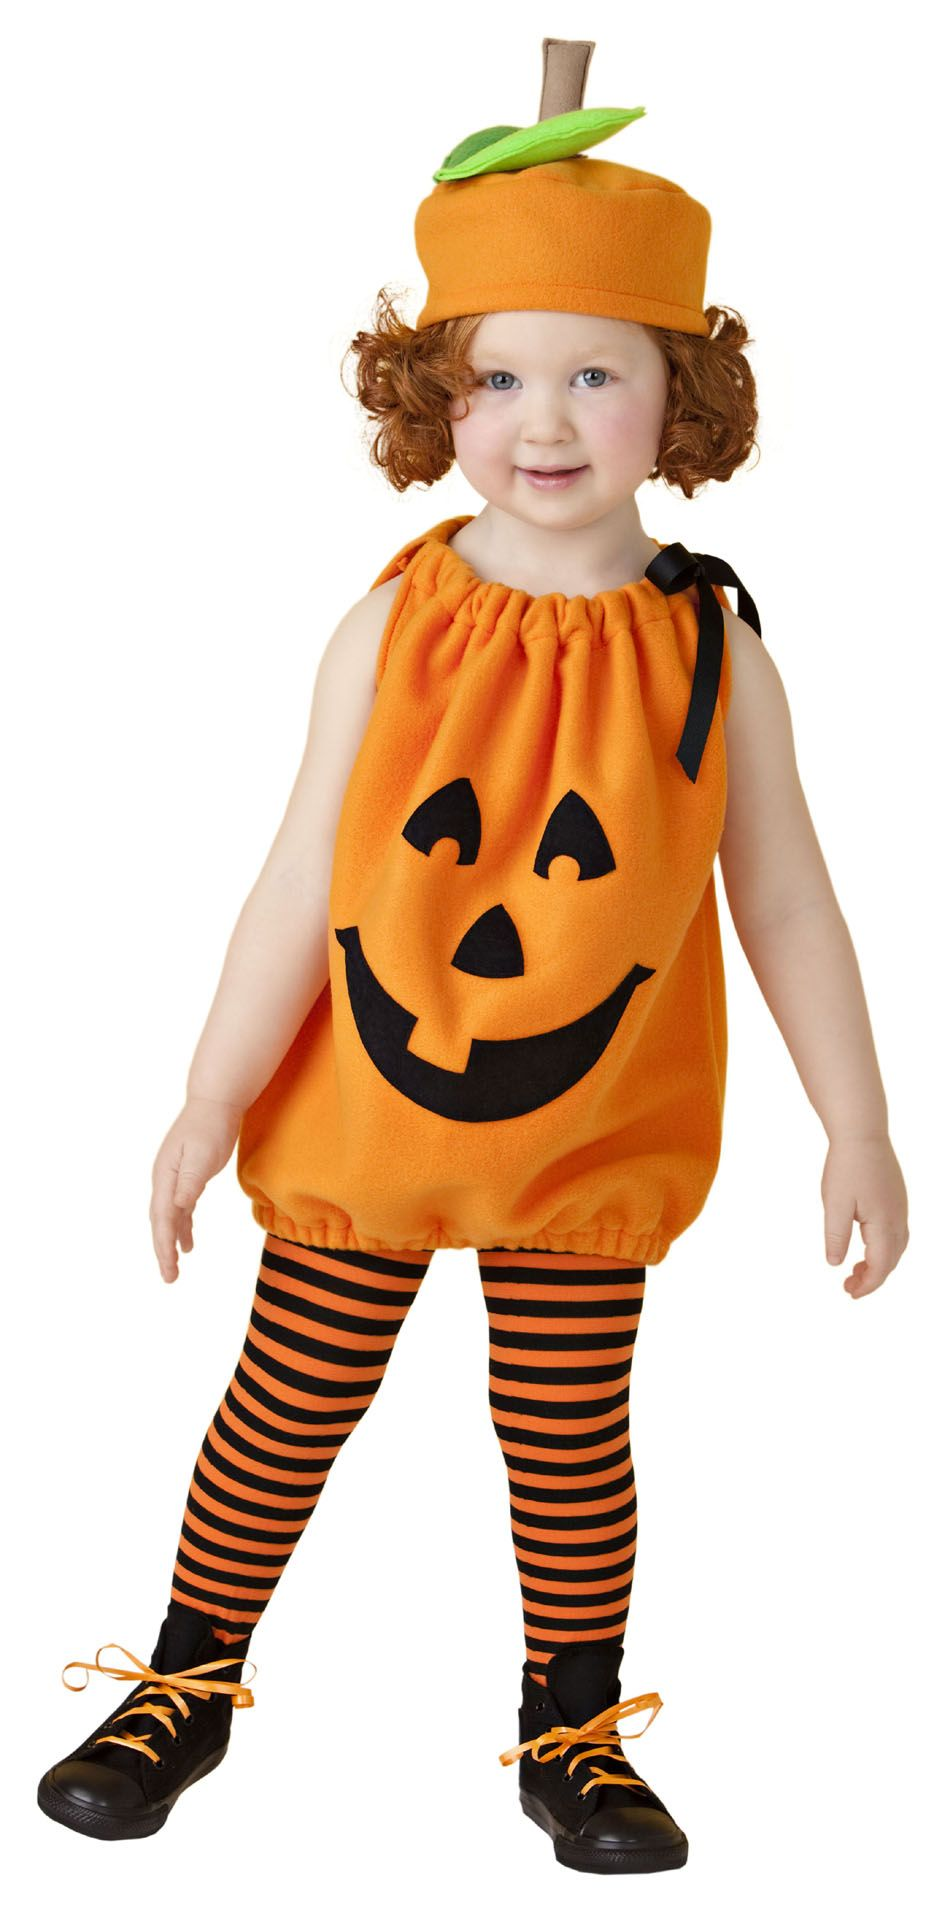 Baby Costume Patterns Amazing Ideas